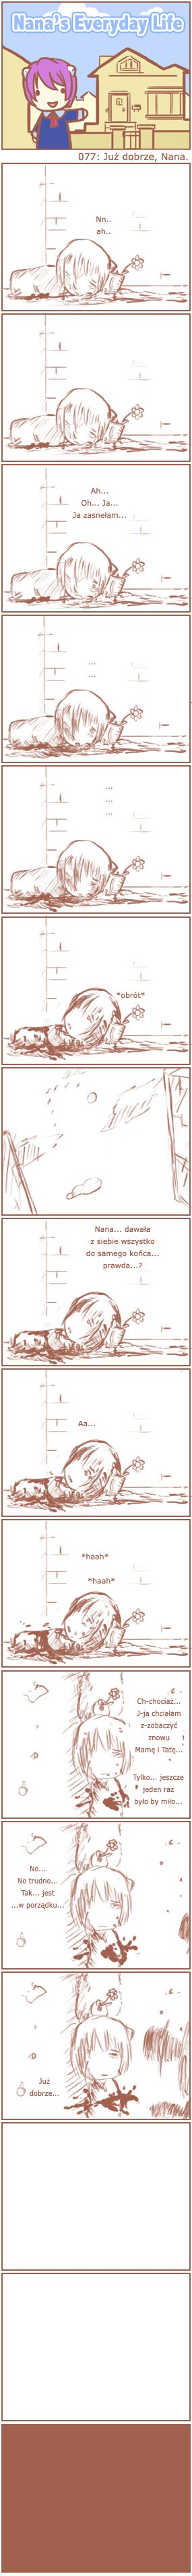 [Nana's Everyday Life - strip 77]